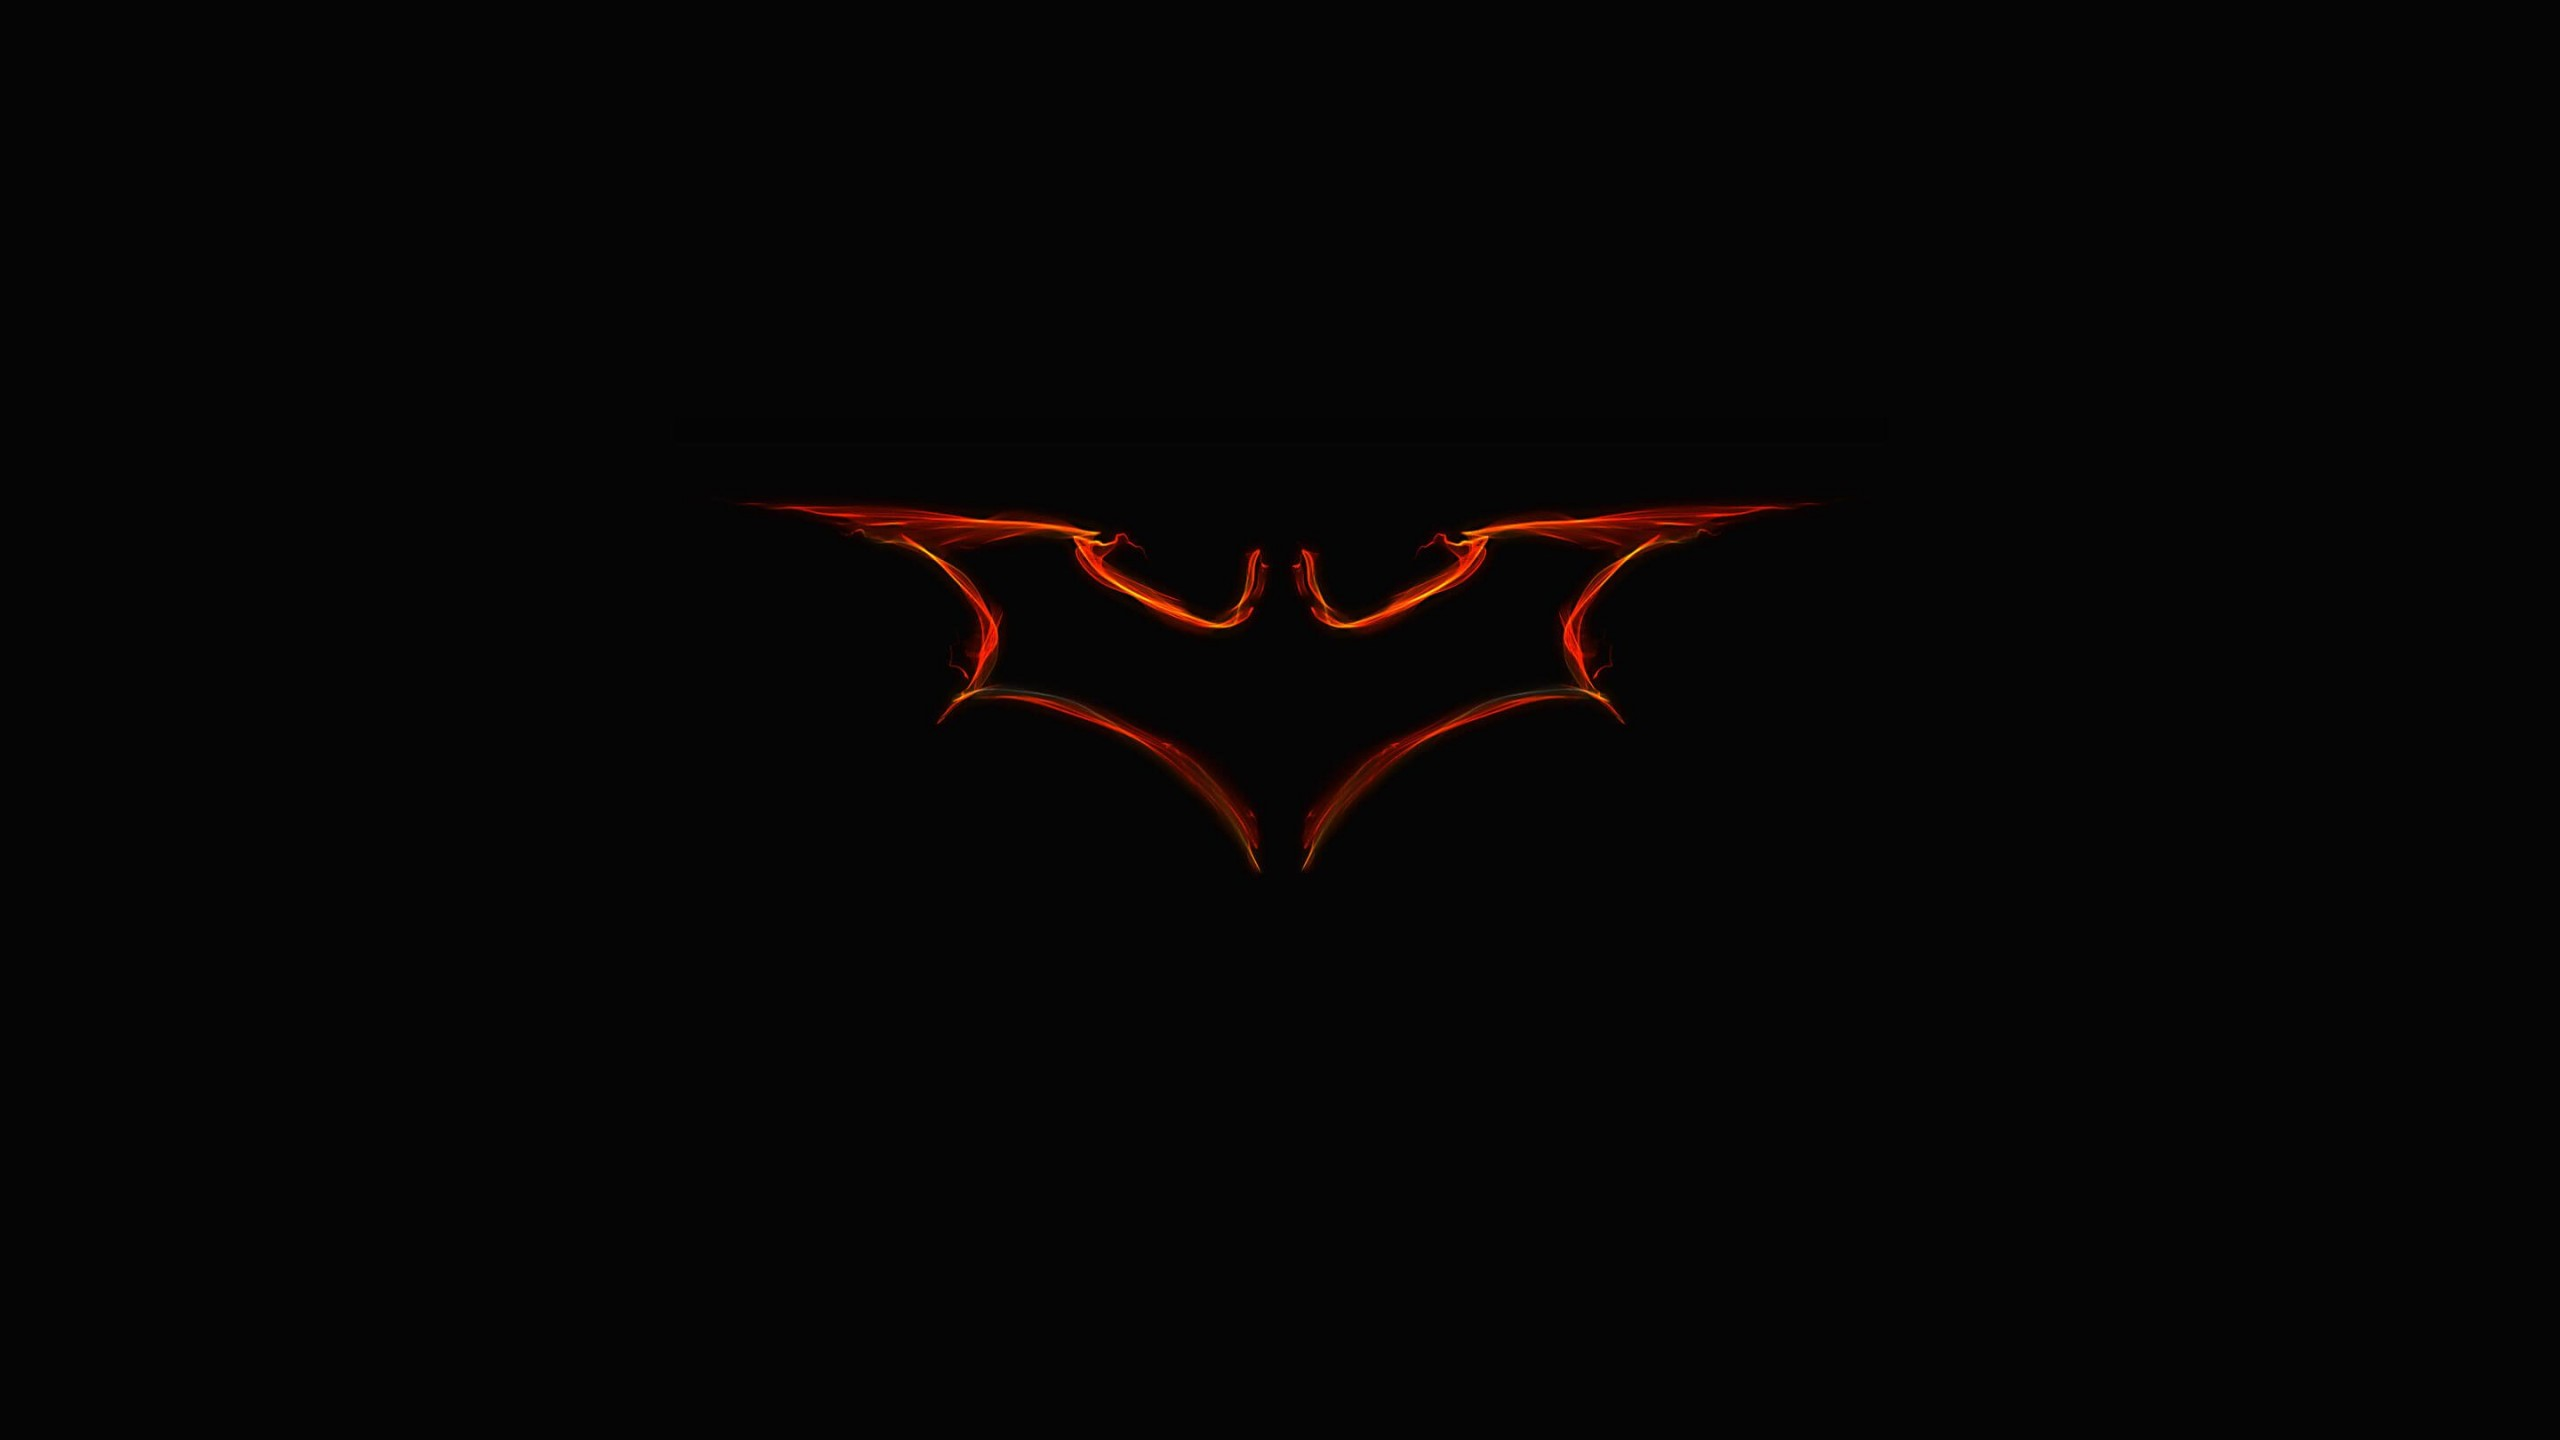 Batman Light Painting Logo Wallpaper for Desktop 2560x1440